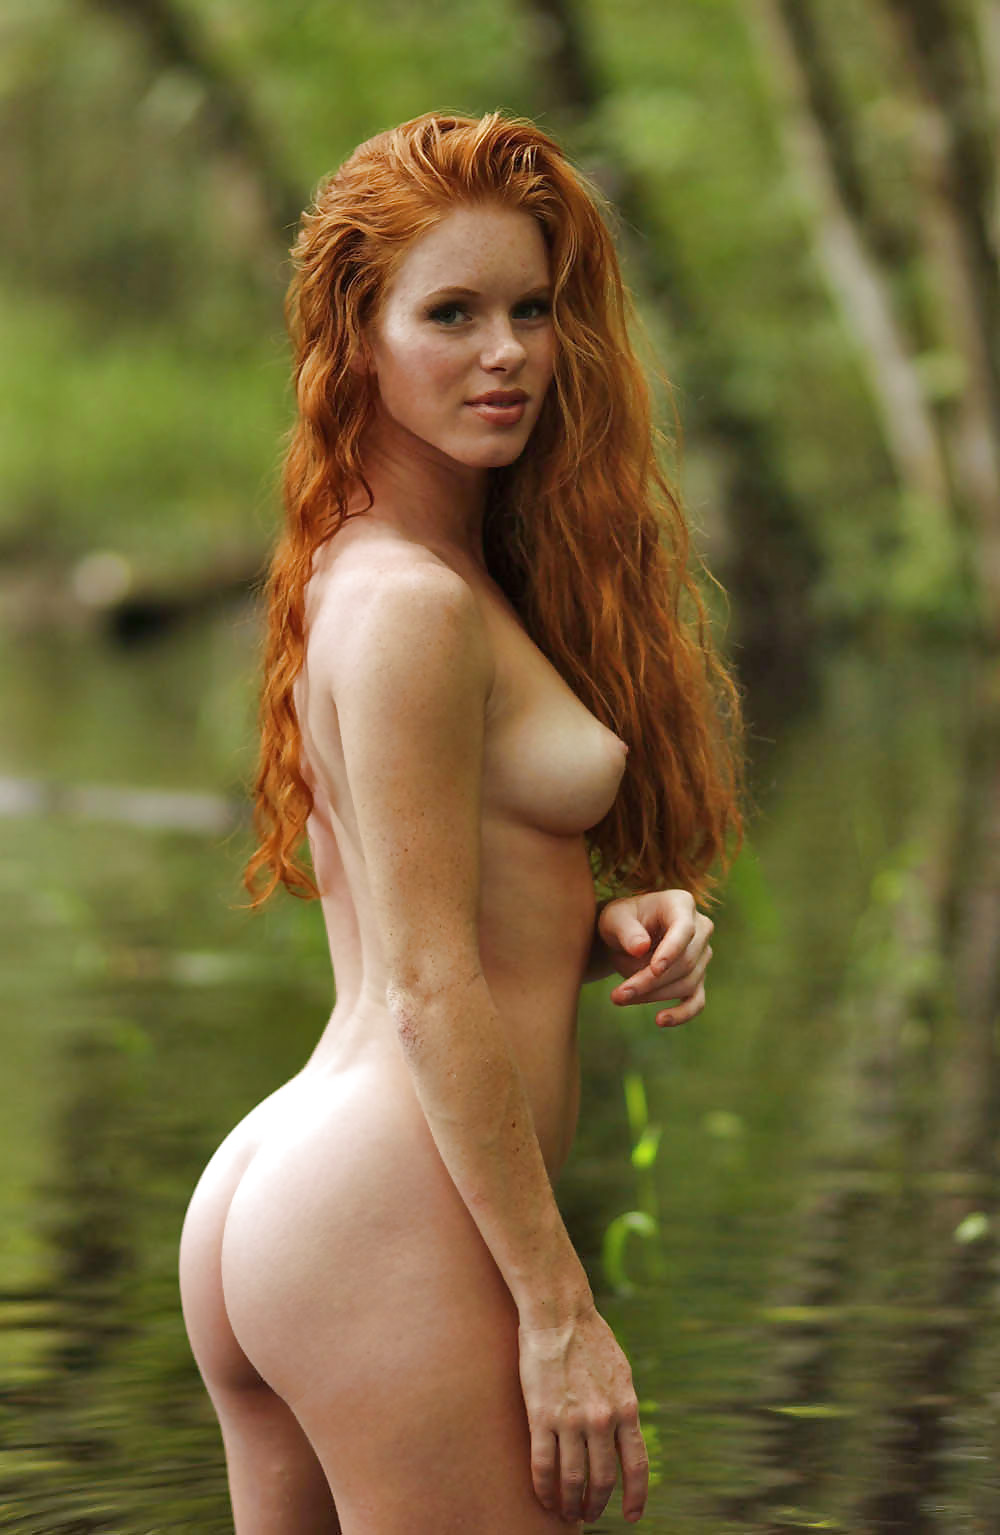 Ass big freckle redhead naked need